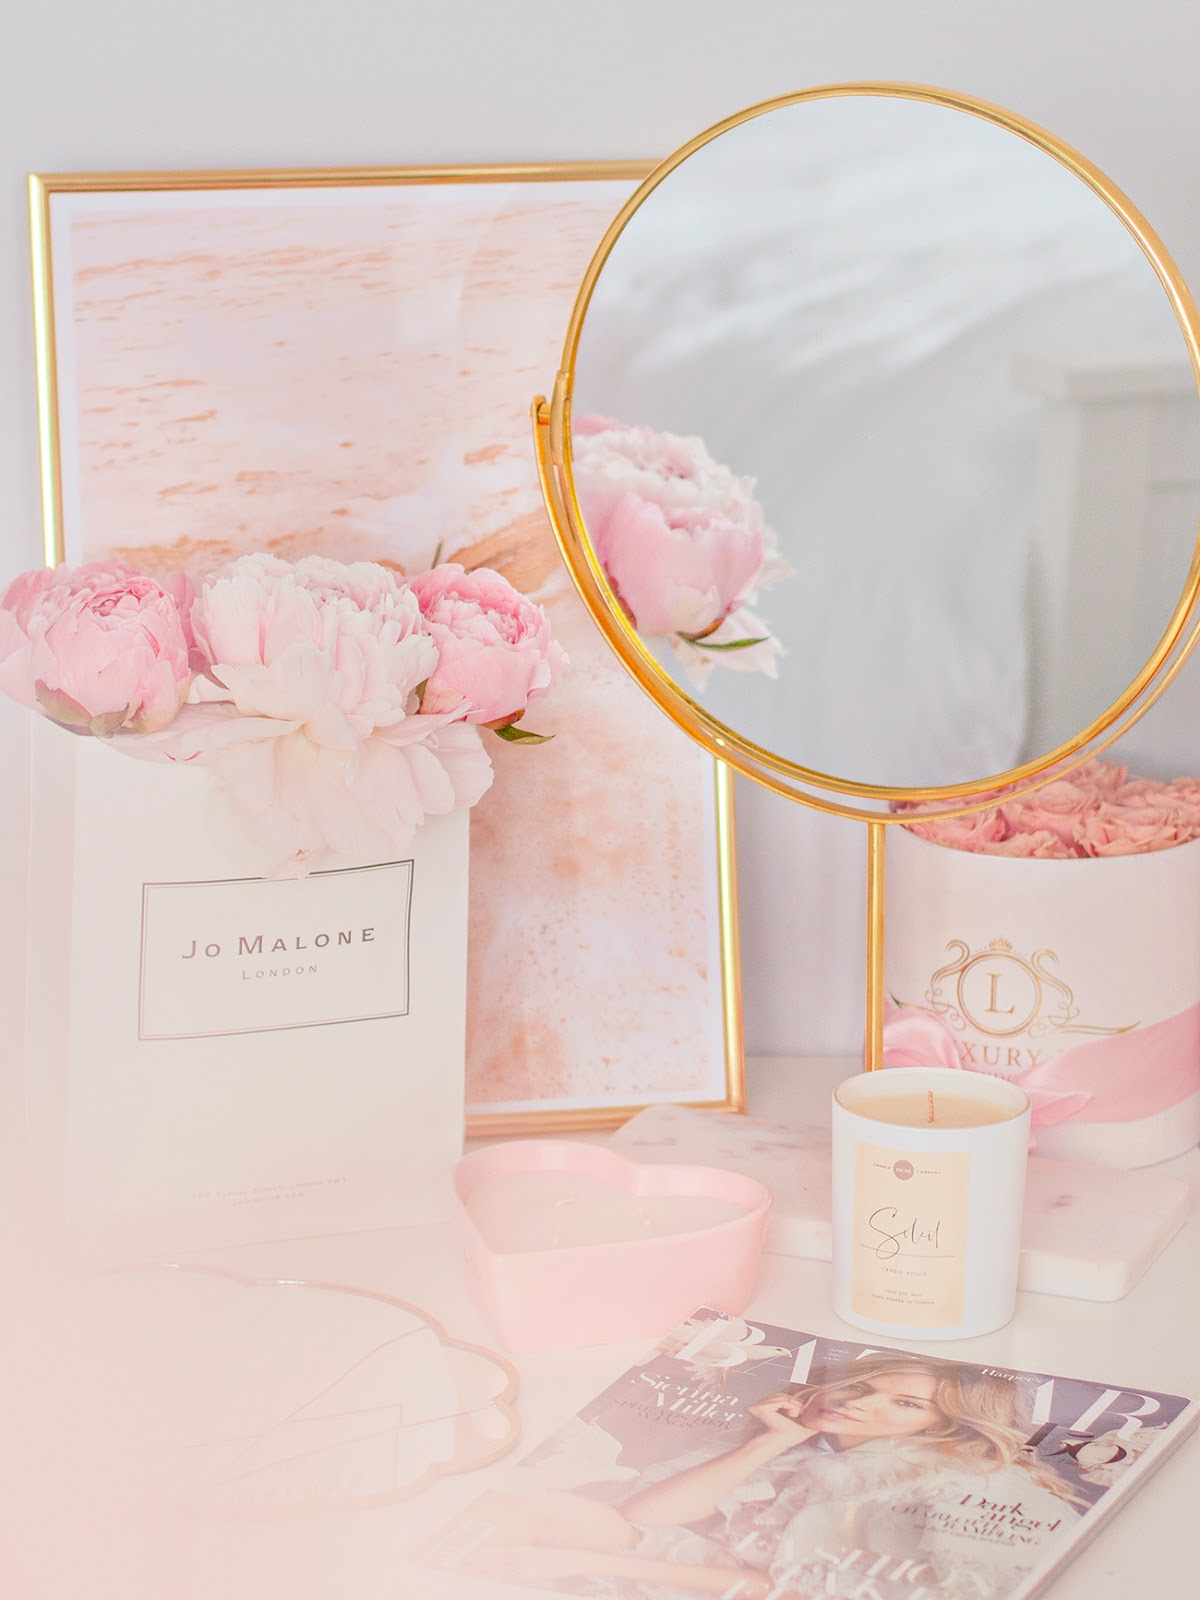 Desk with a round gold mirror and pink peonies in a bag